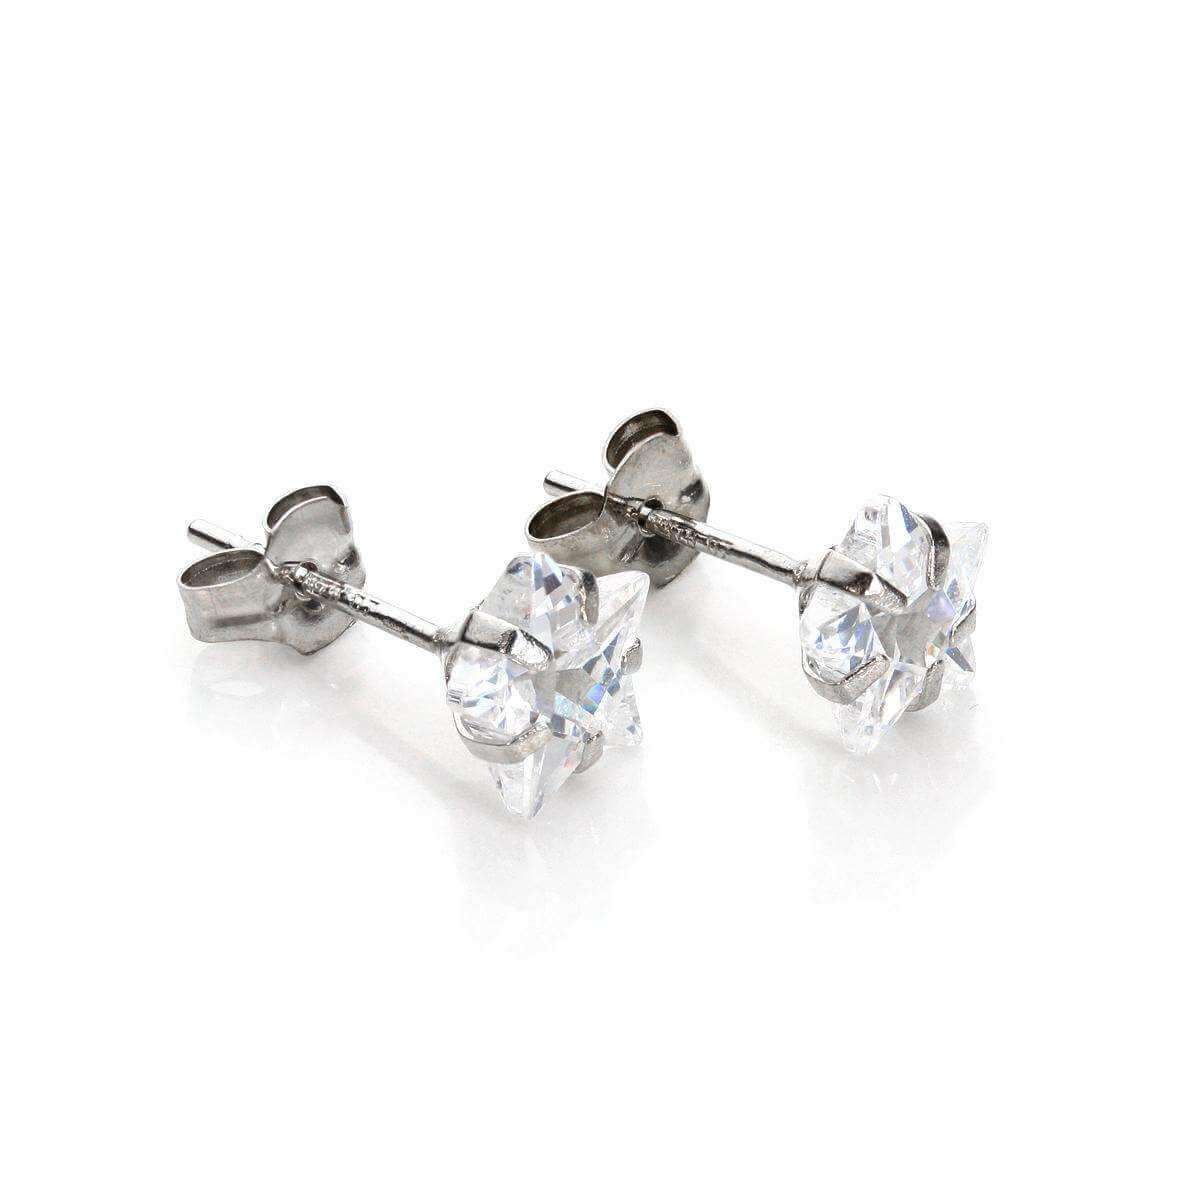 f94552951 9ct White Gold Clear Crystal 6mm Star Stud Earrings | JewelleryBox ...